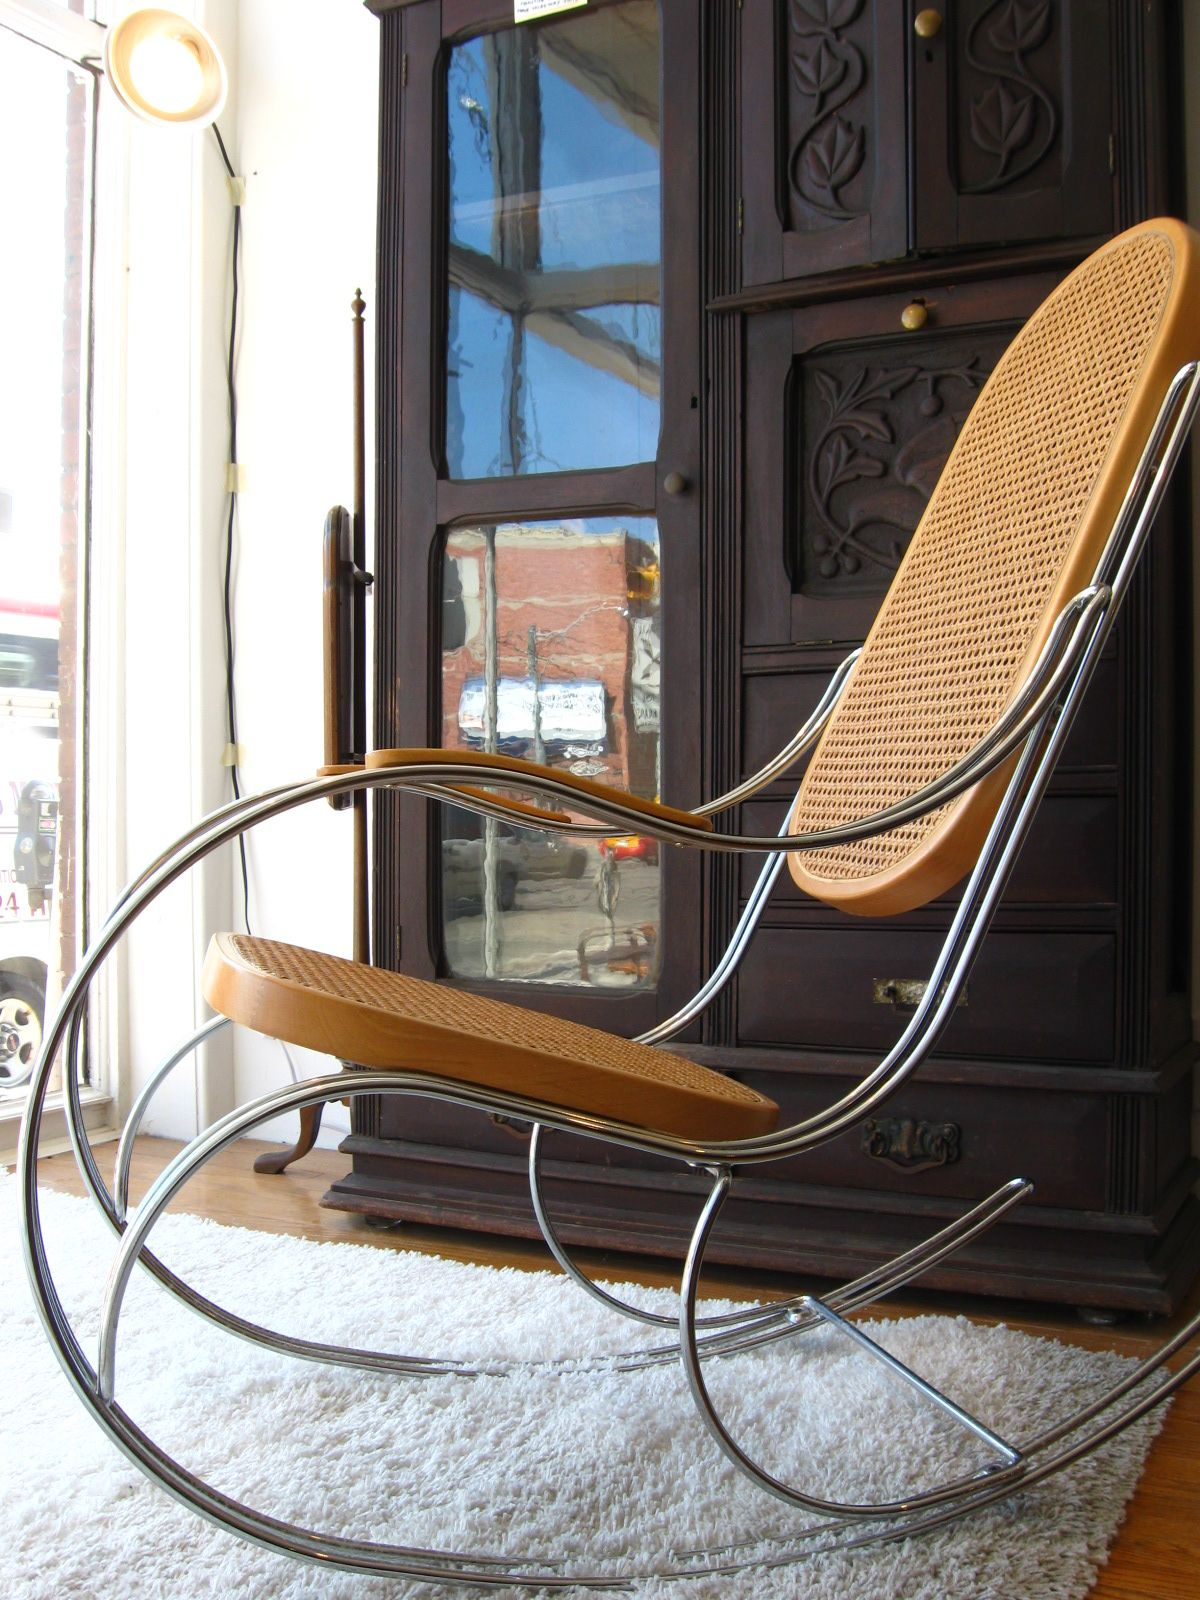 Vintage Chrome & Cane Italian Rocking Chair